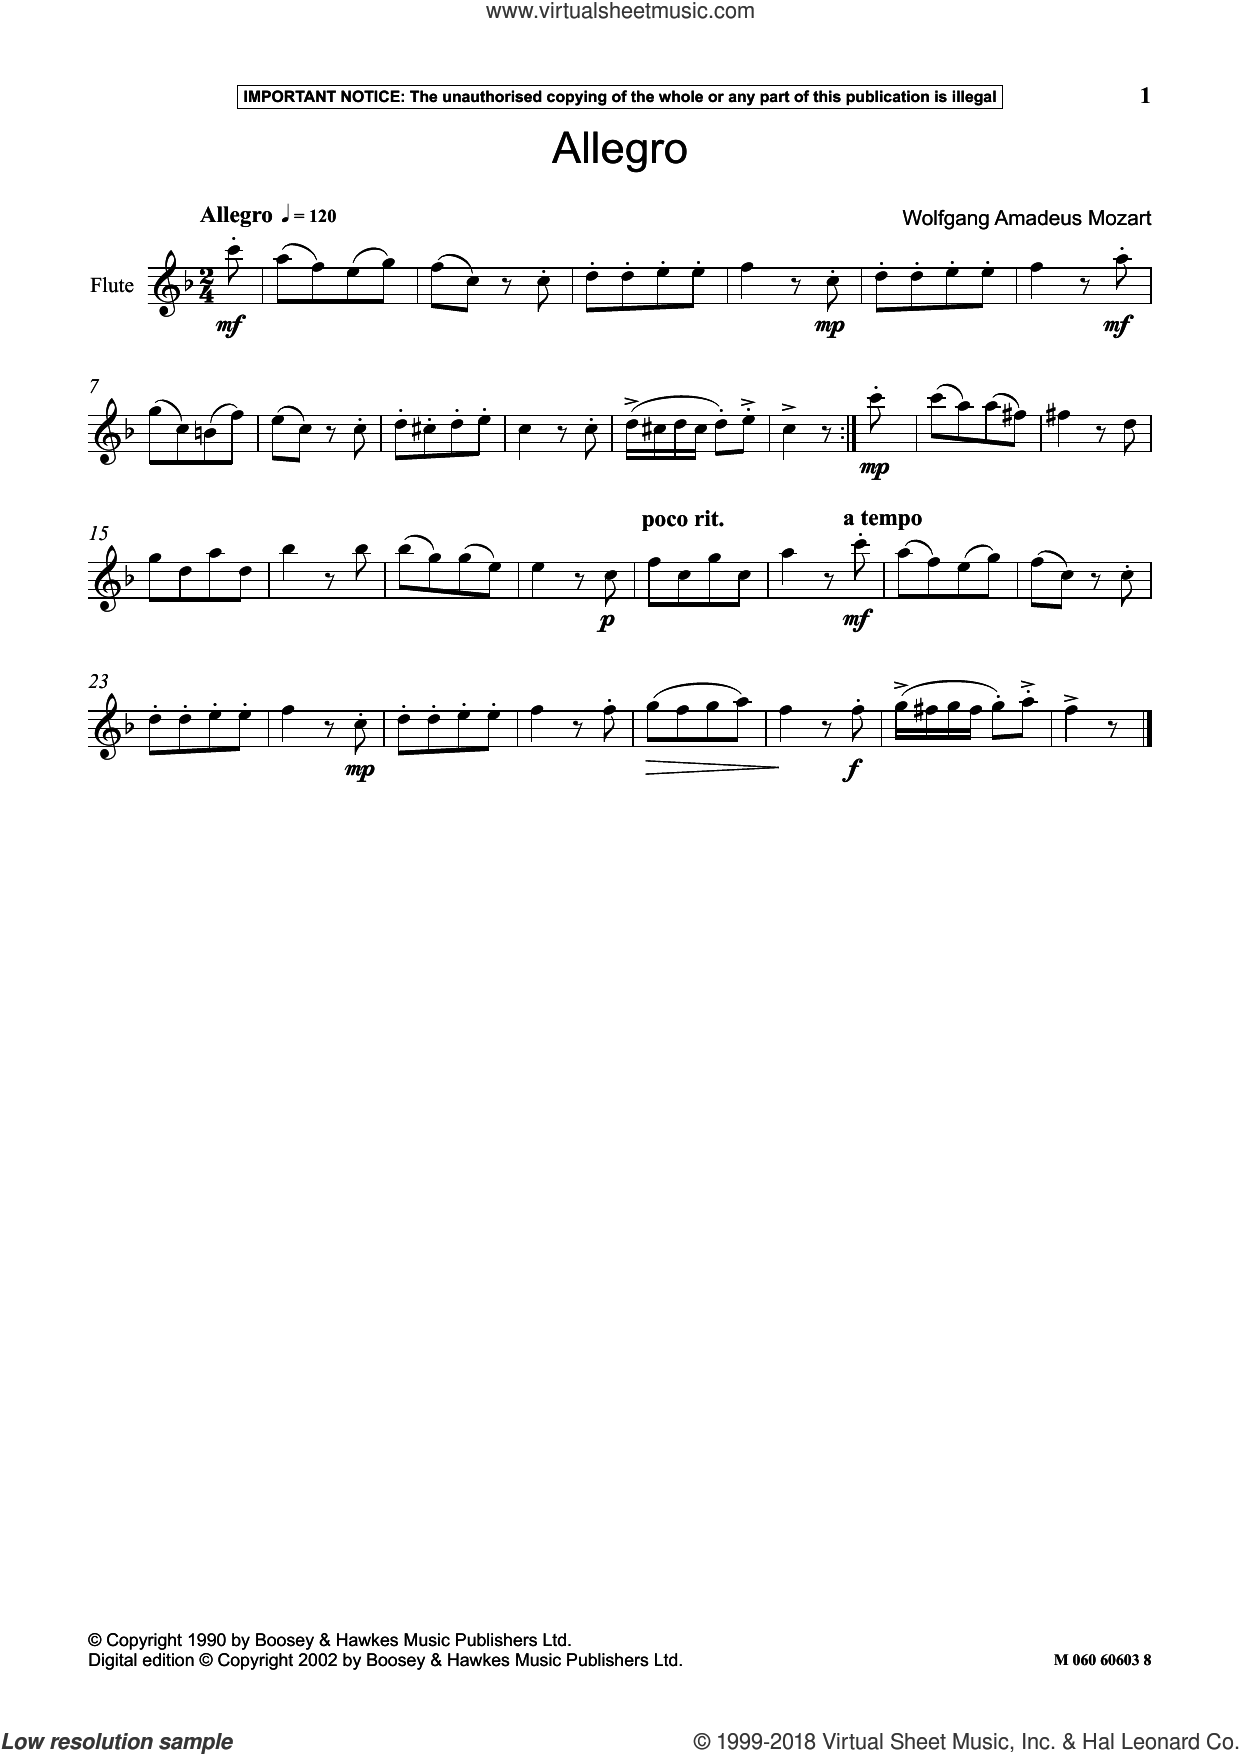 Allegro sheet music for flute solo by Wolfgang Amadeus Mozart, classical score, intermediate skill level